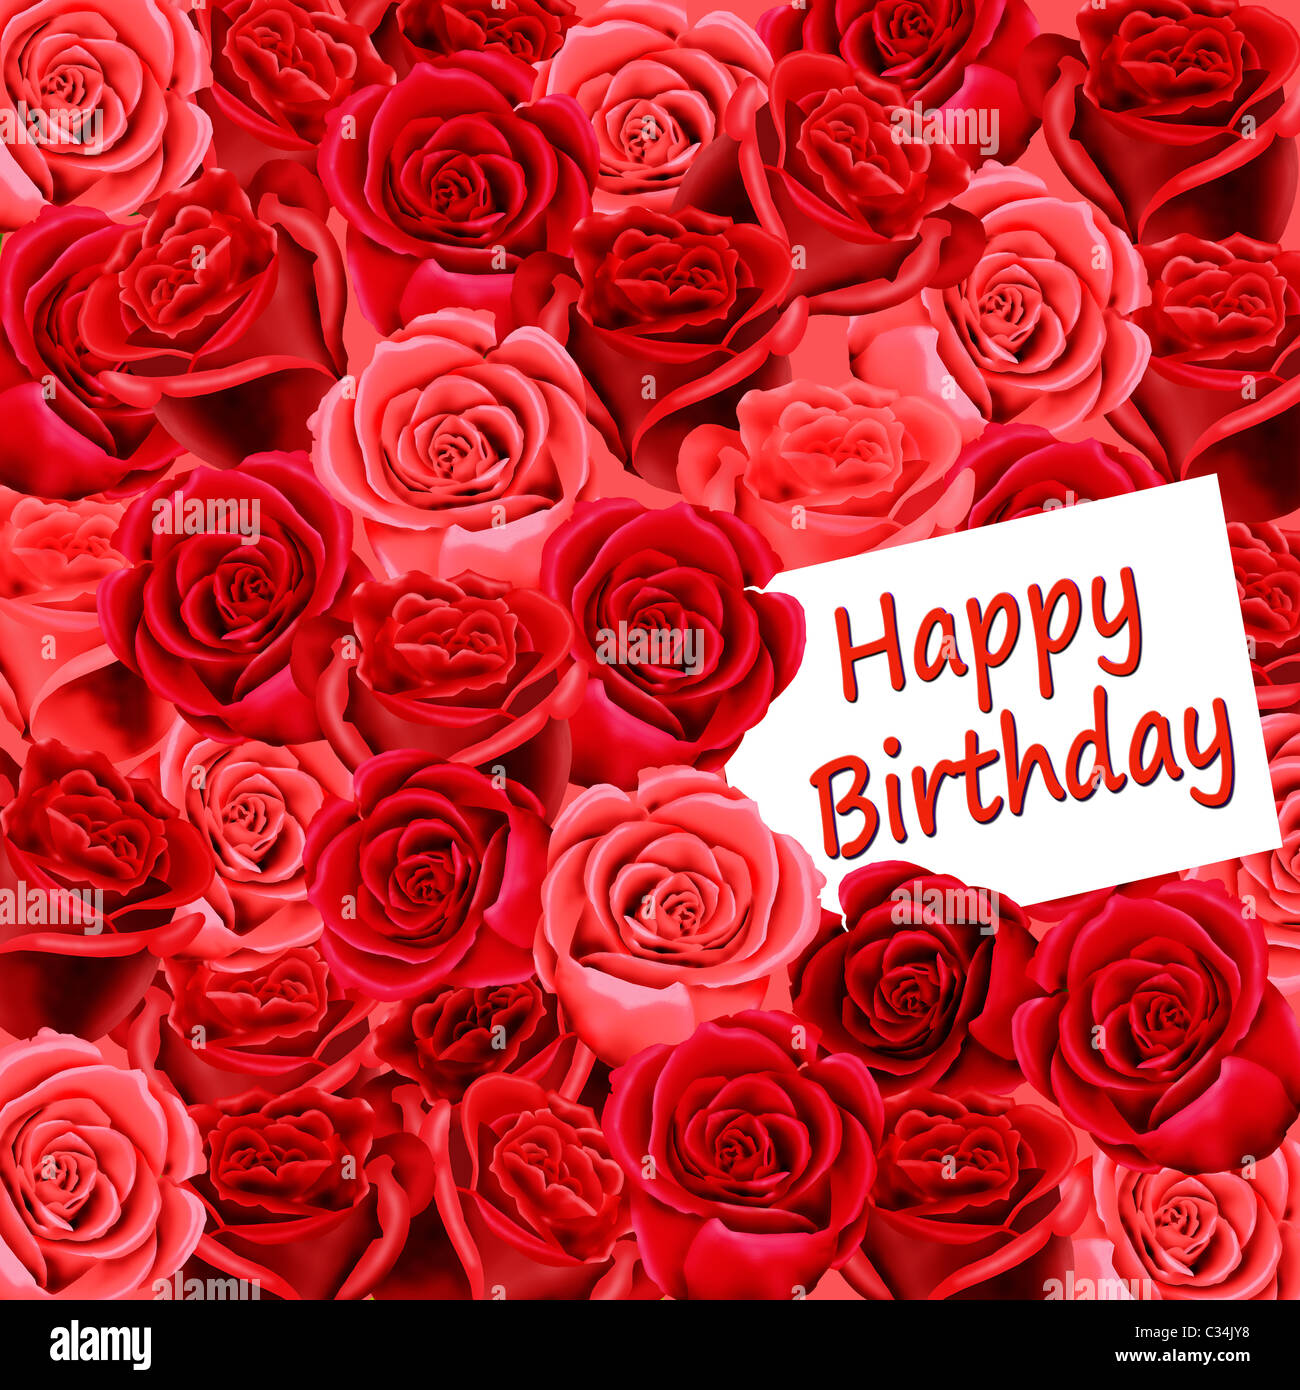 Birthday Card With Roses And Happy Birthday Stock Photo 36367388